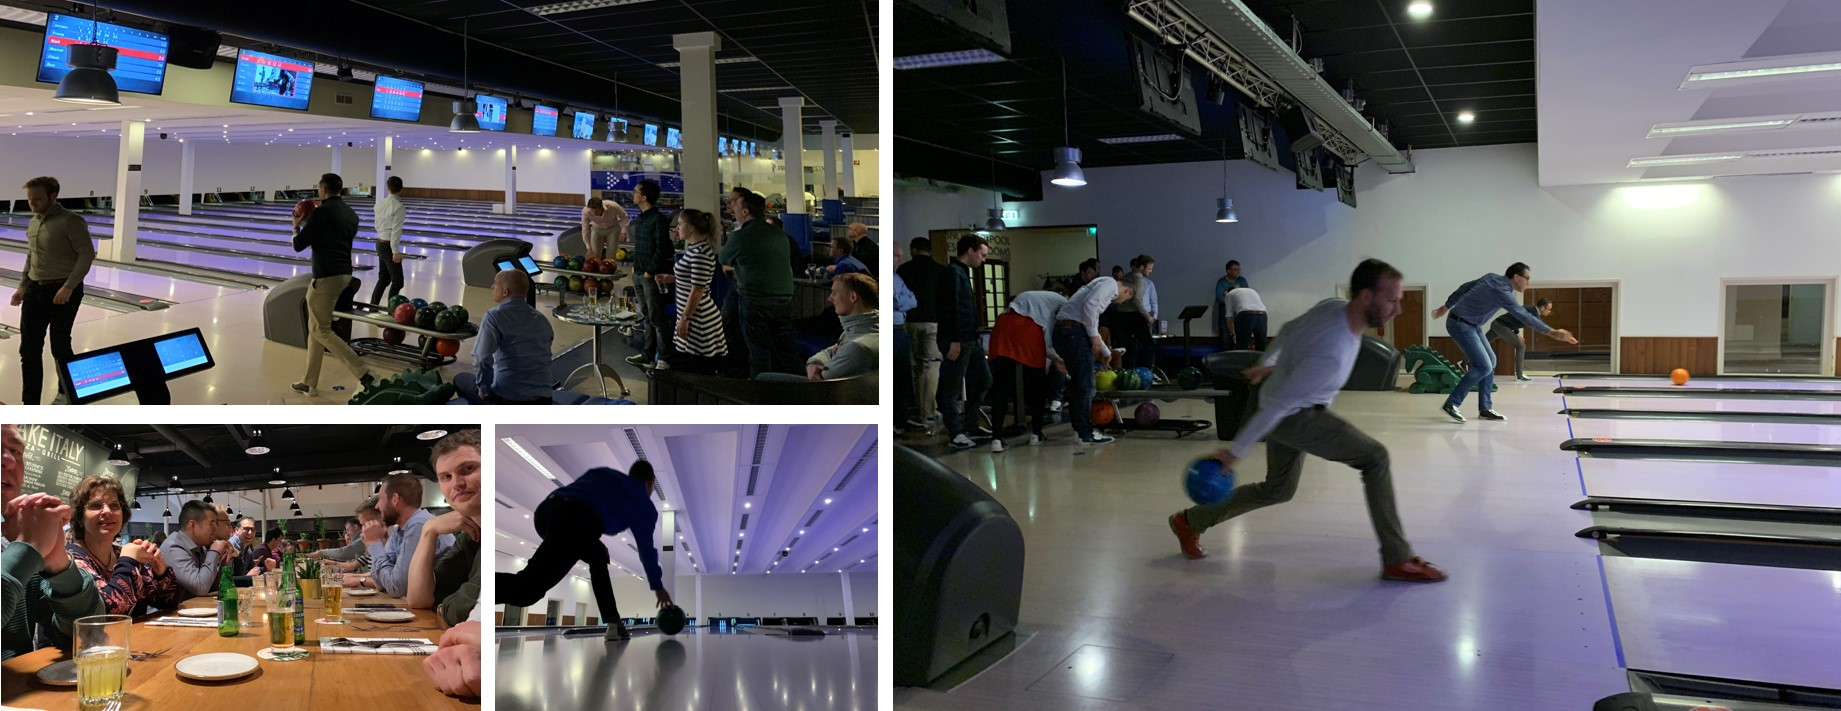 teammeeting-fun-bowlen